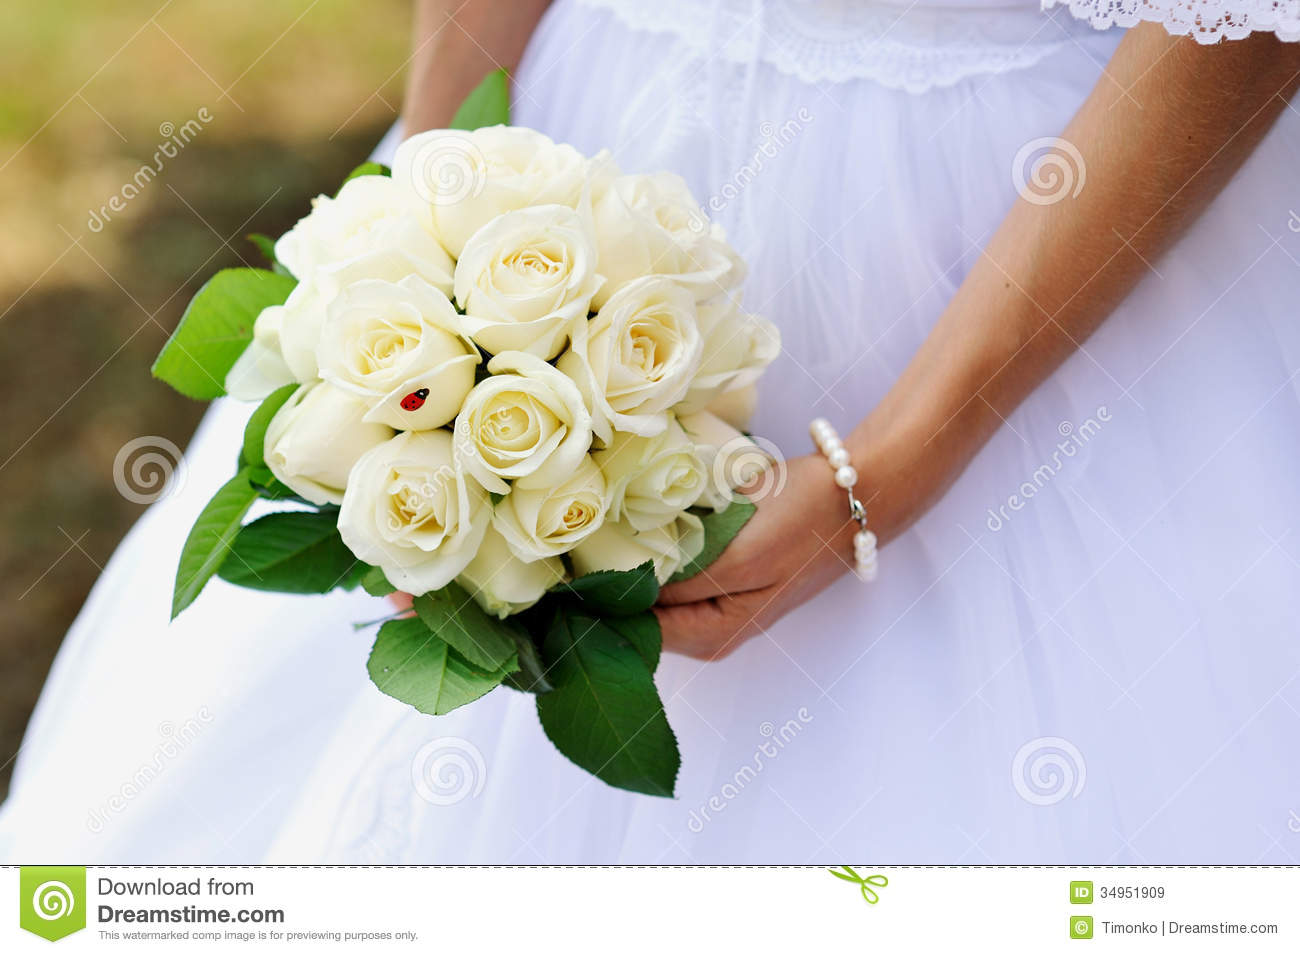 Wedding Bouquet Of White Roses Wedding bouquet of white roses